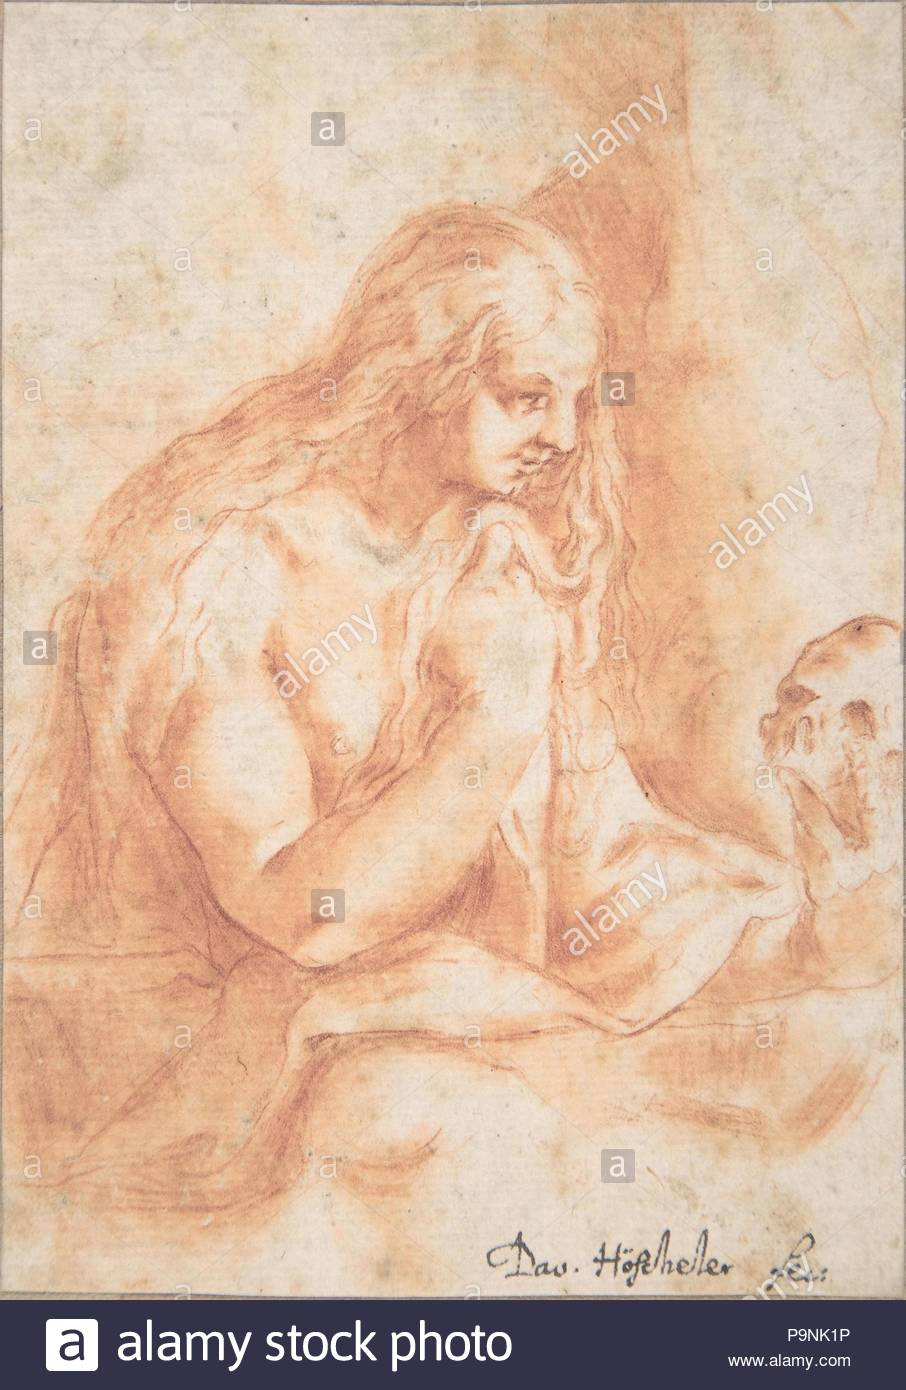 Mary Magdalen Penitent, 17th century, Red chalk, sheet: 4 13/16 x 3 3/8 in. (12.2 x 8.6 cm), Drawings, David Höscheler (Swiss (?), active 17th century). - Stock Image